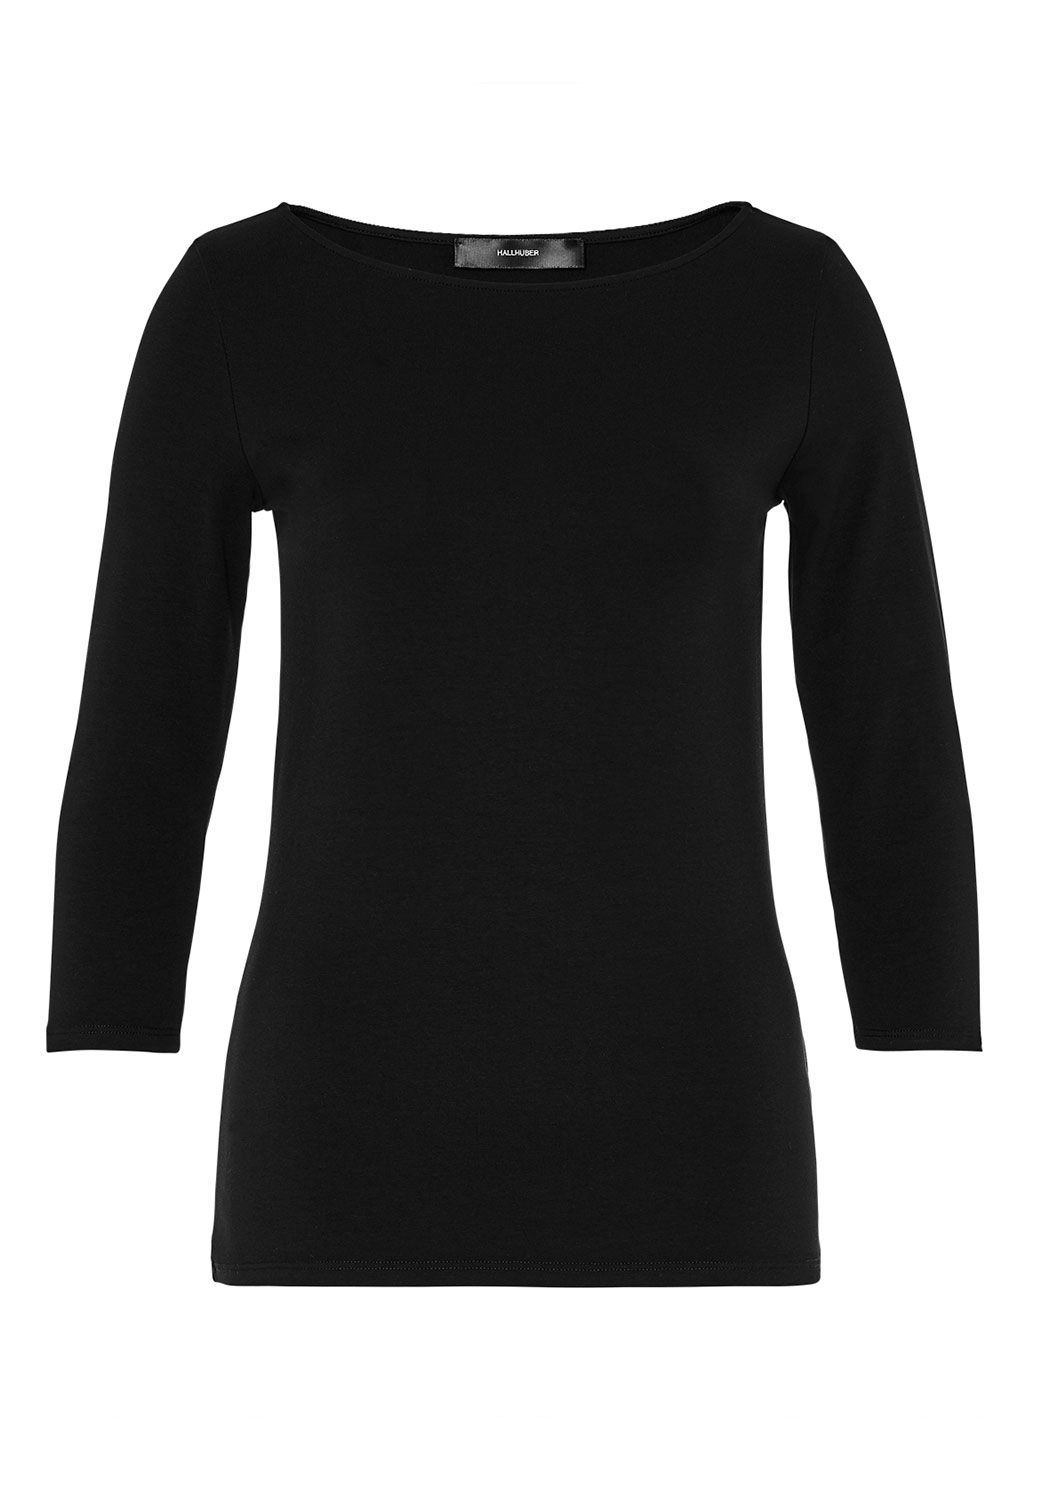 Hallhuber Boat Neck Top With Three-Quarter Sleeves, Black